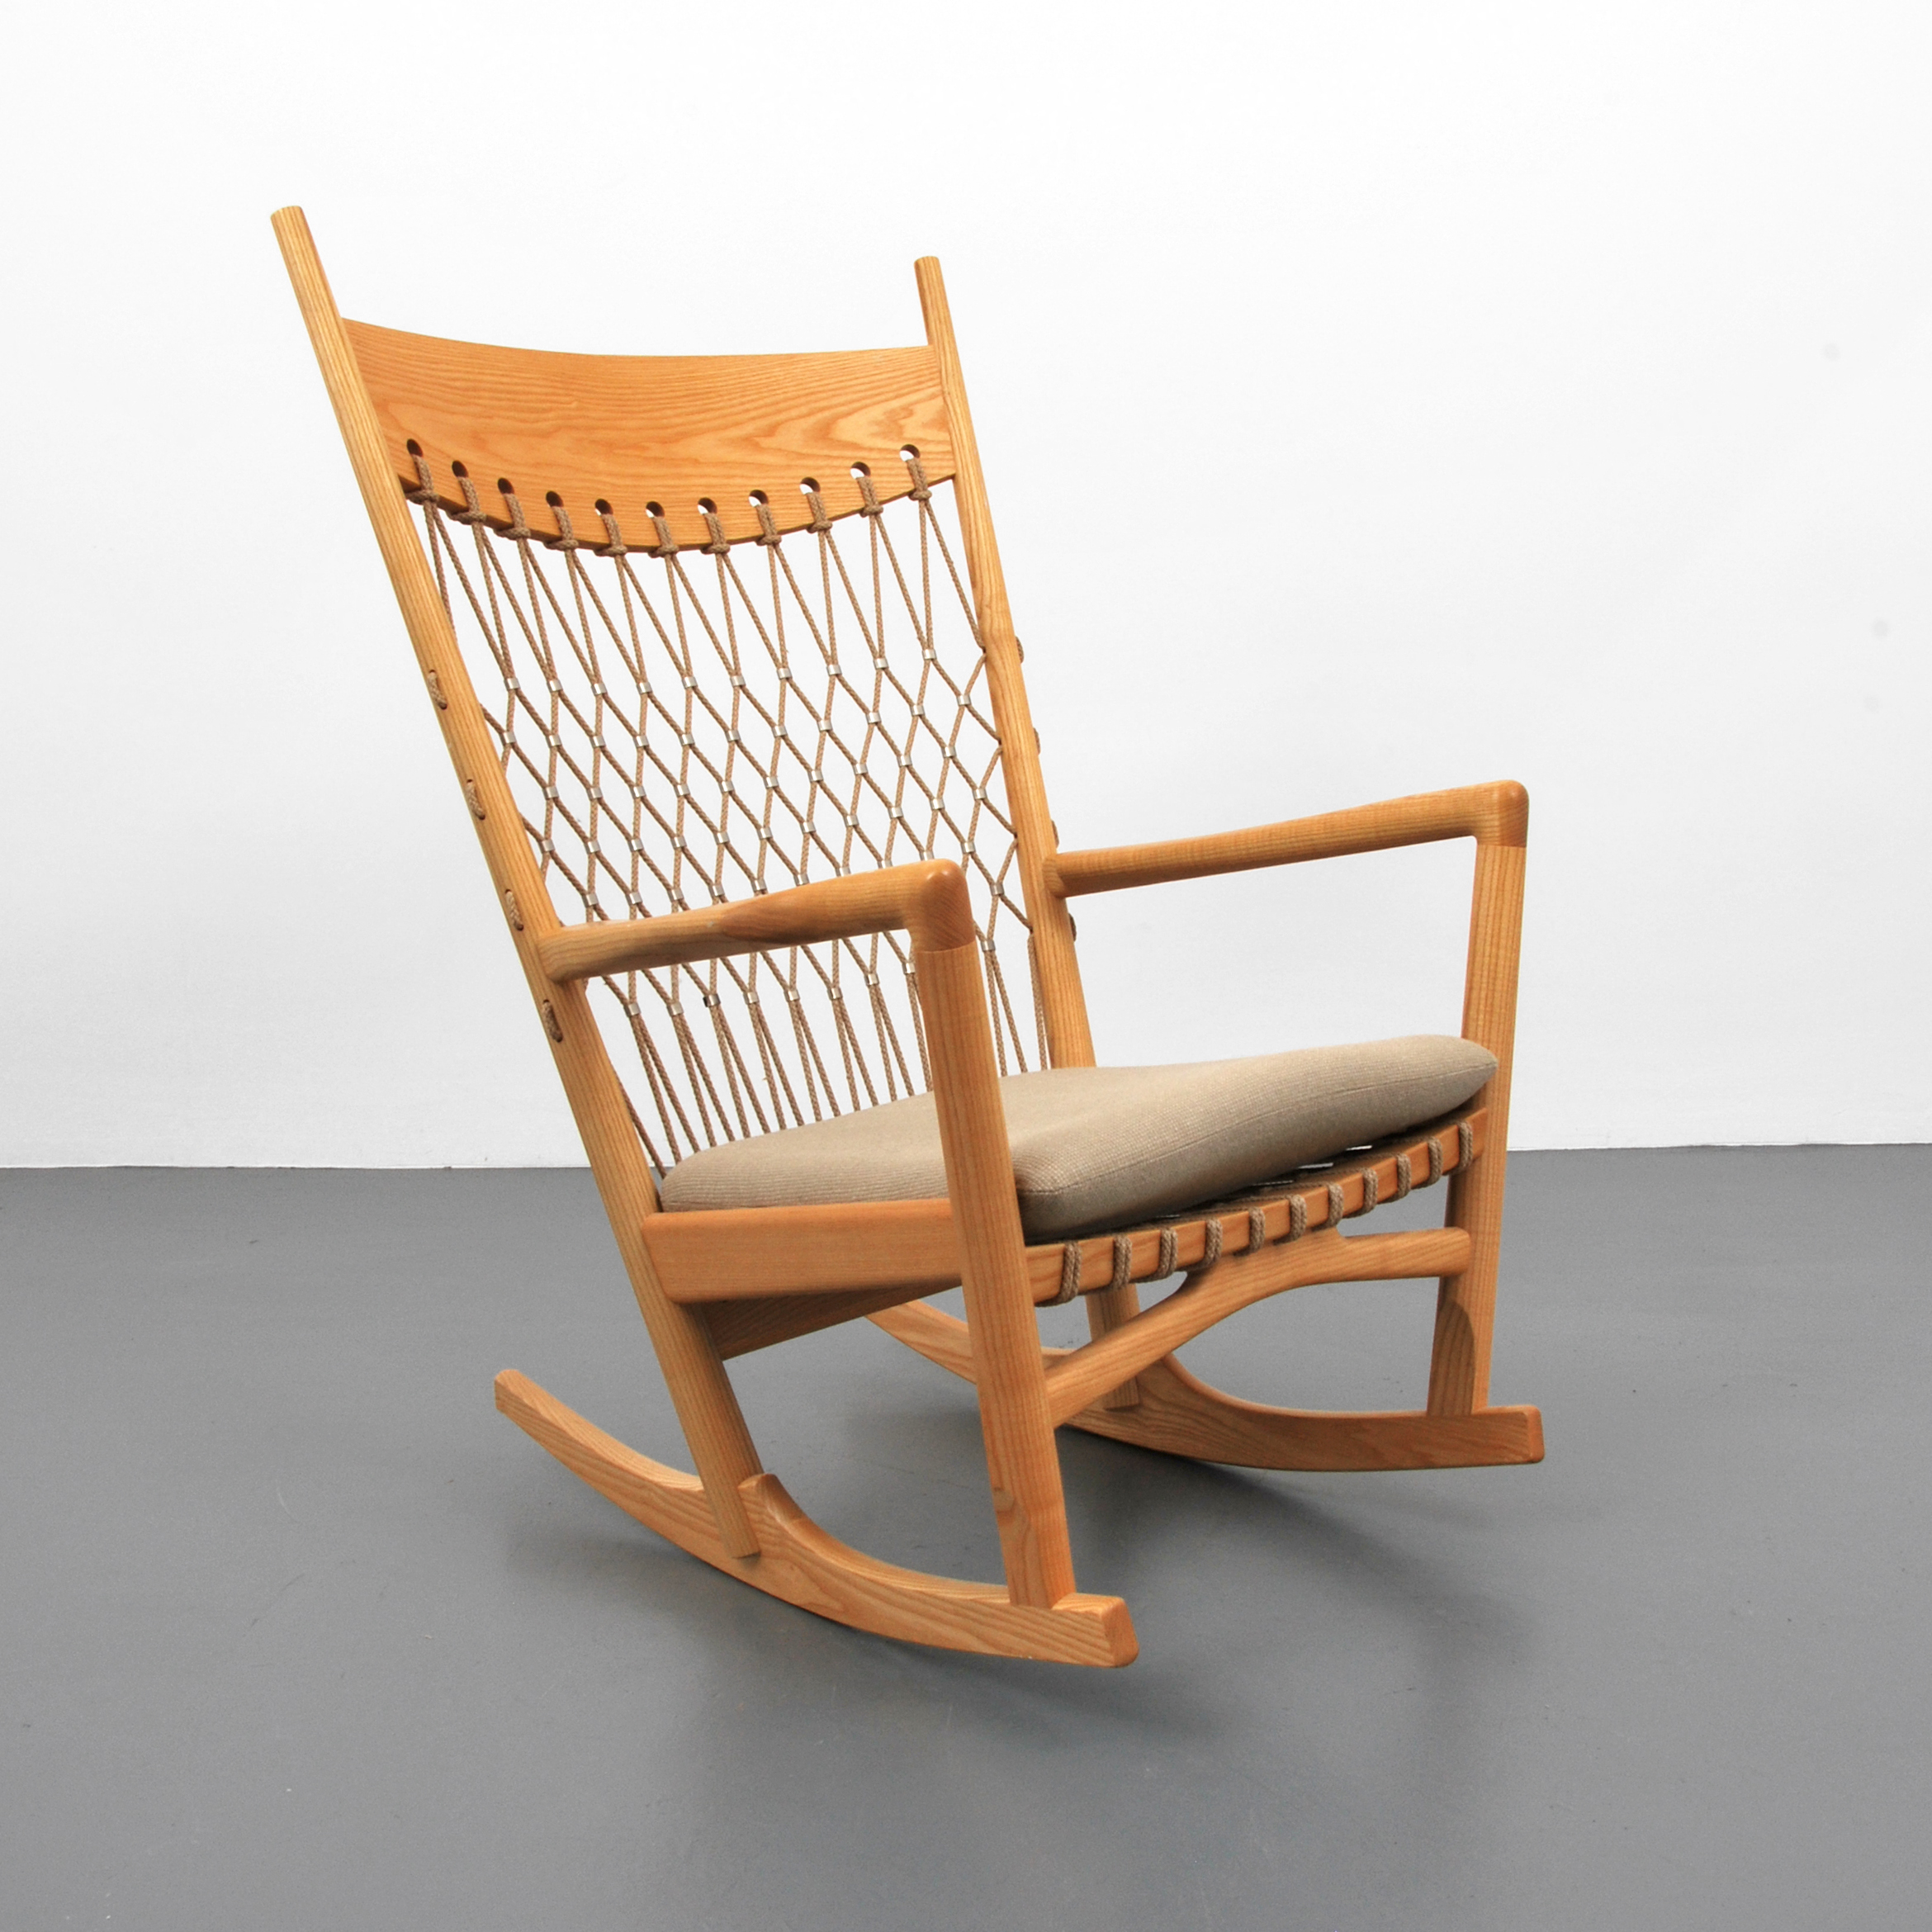 Superieur Rare Hans Wegner Rocking Chair, Manufactured By PP Mobler. Palm Beach  Modern Auctions Image